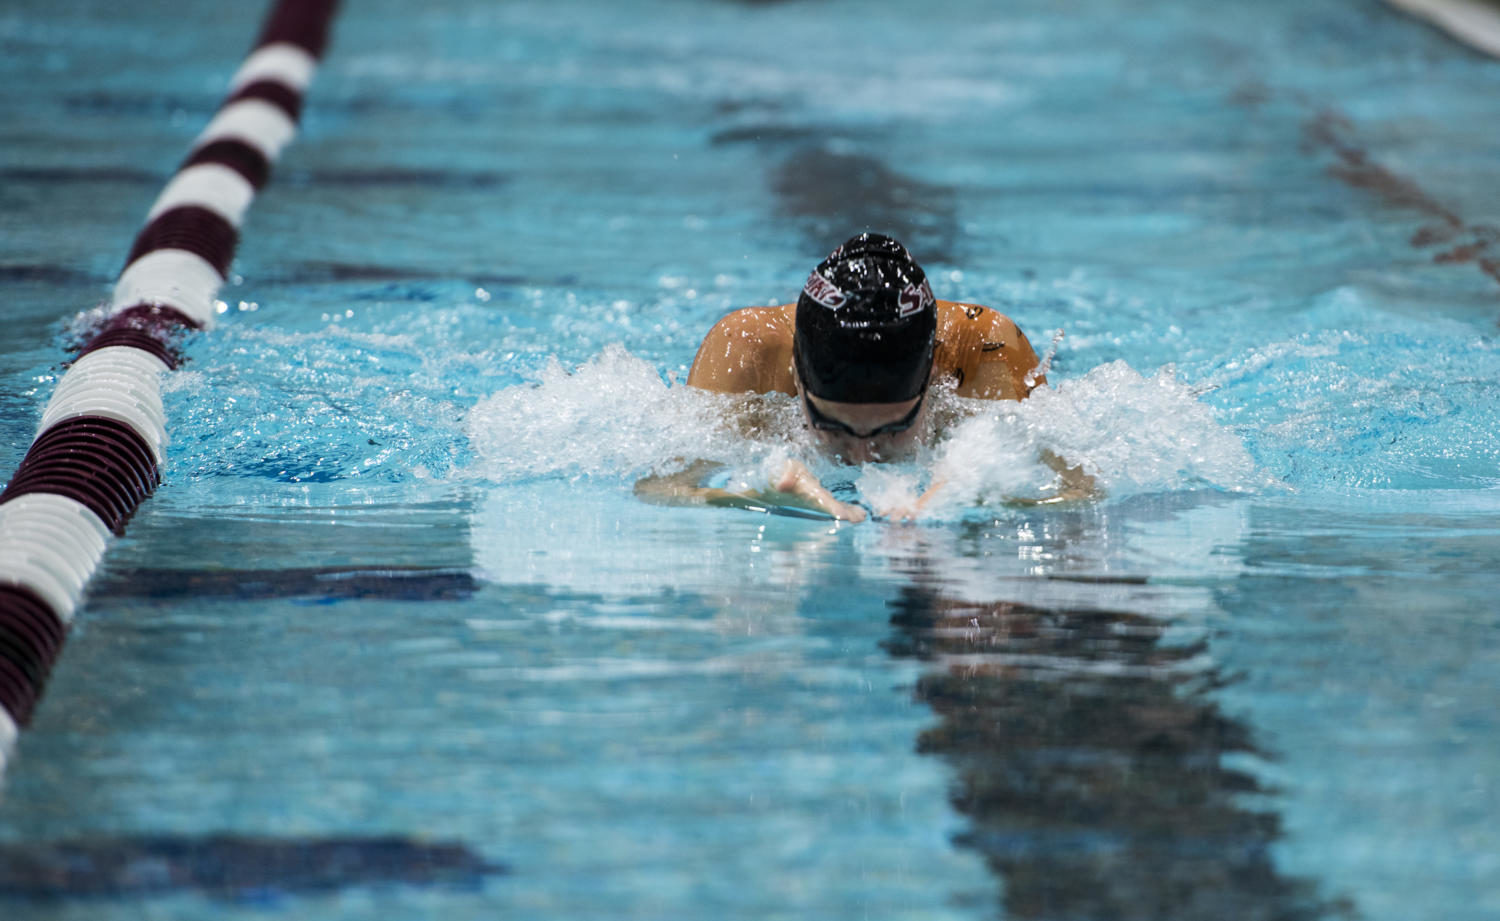 Senior Chandler Ott swims the women's 50 yard breaststroke Friday, Sept. 15, 2017, during the Saluki's first meet of the season against Lindenwold University at Edward Shea Natatorium. (Dylan Nelson | Dylan_Nelson99)